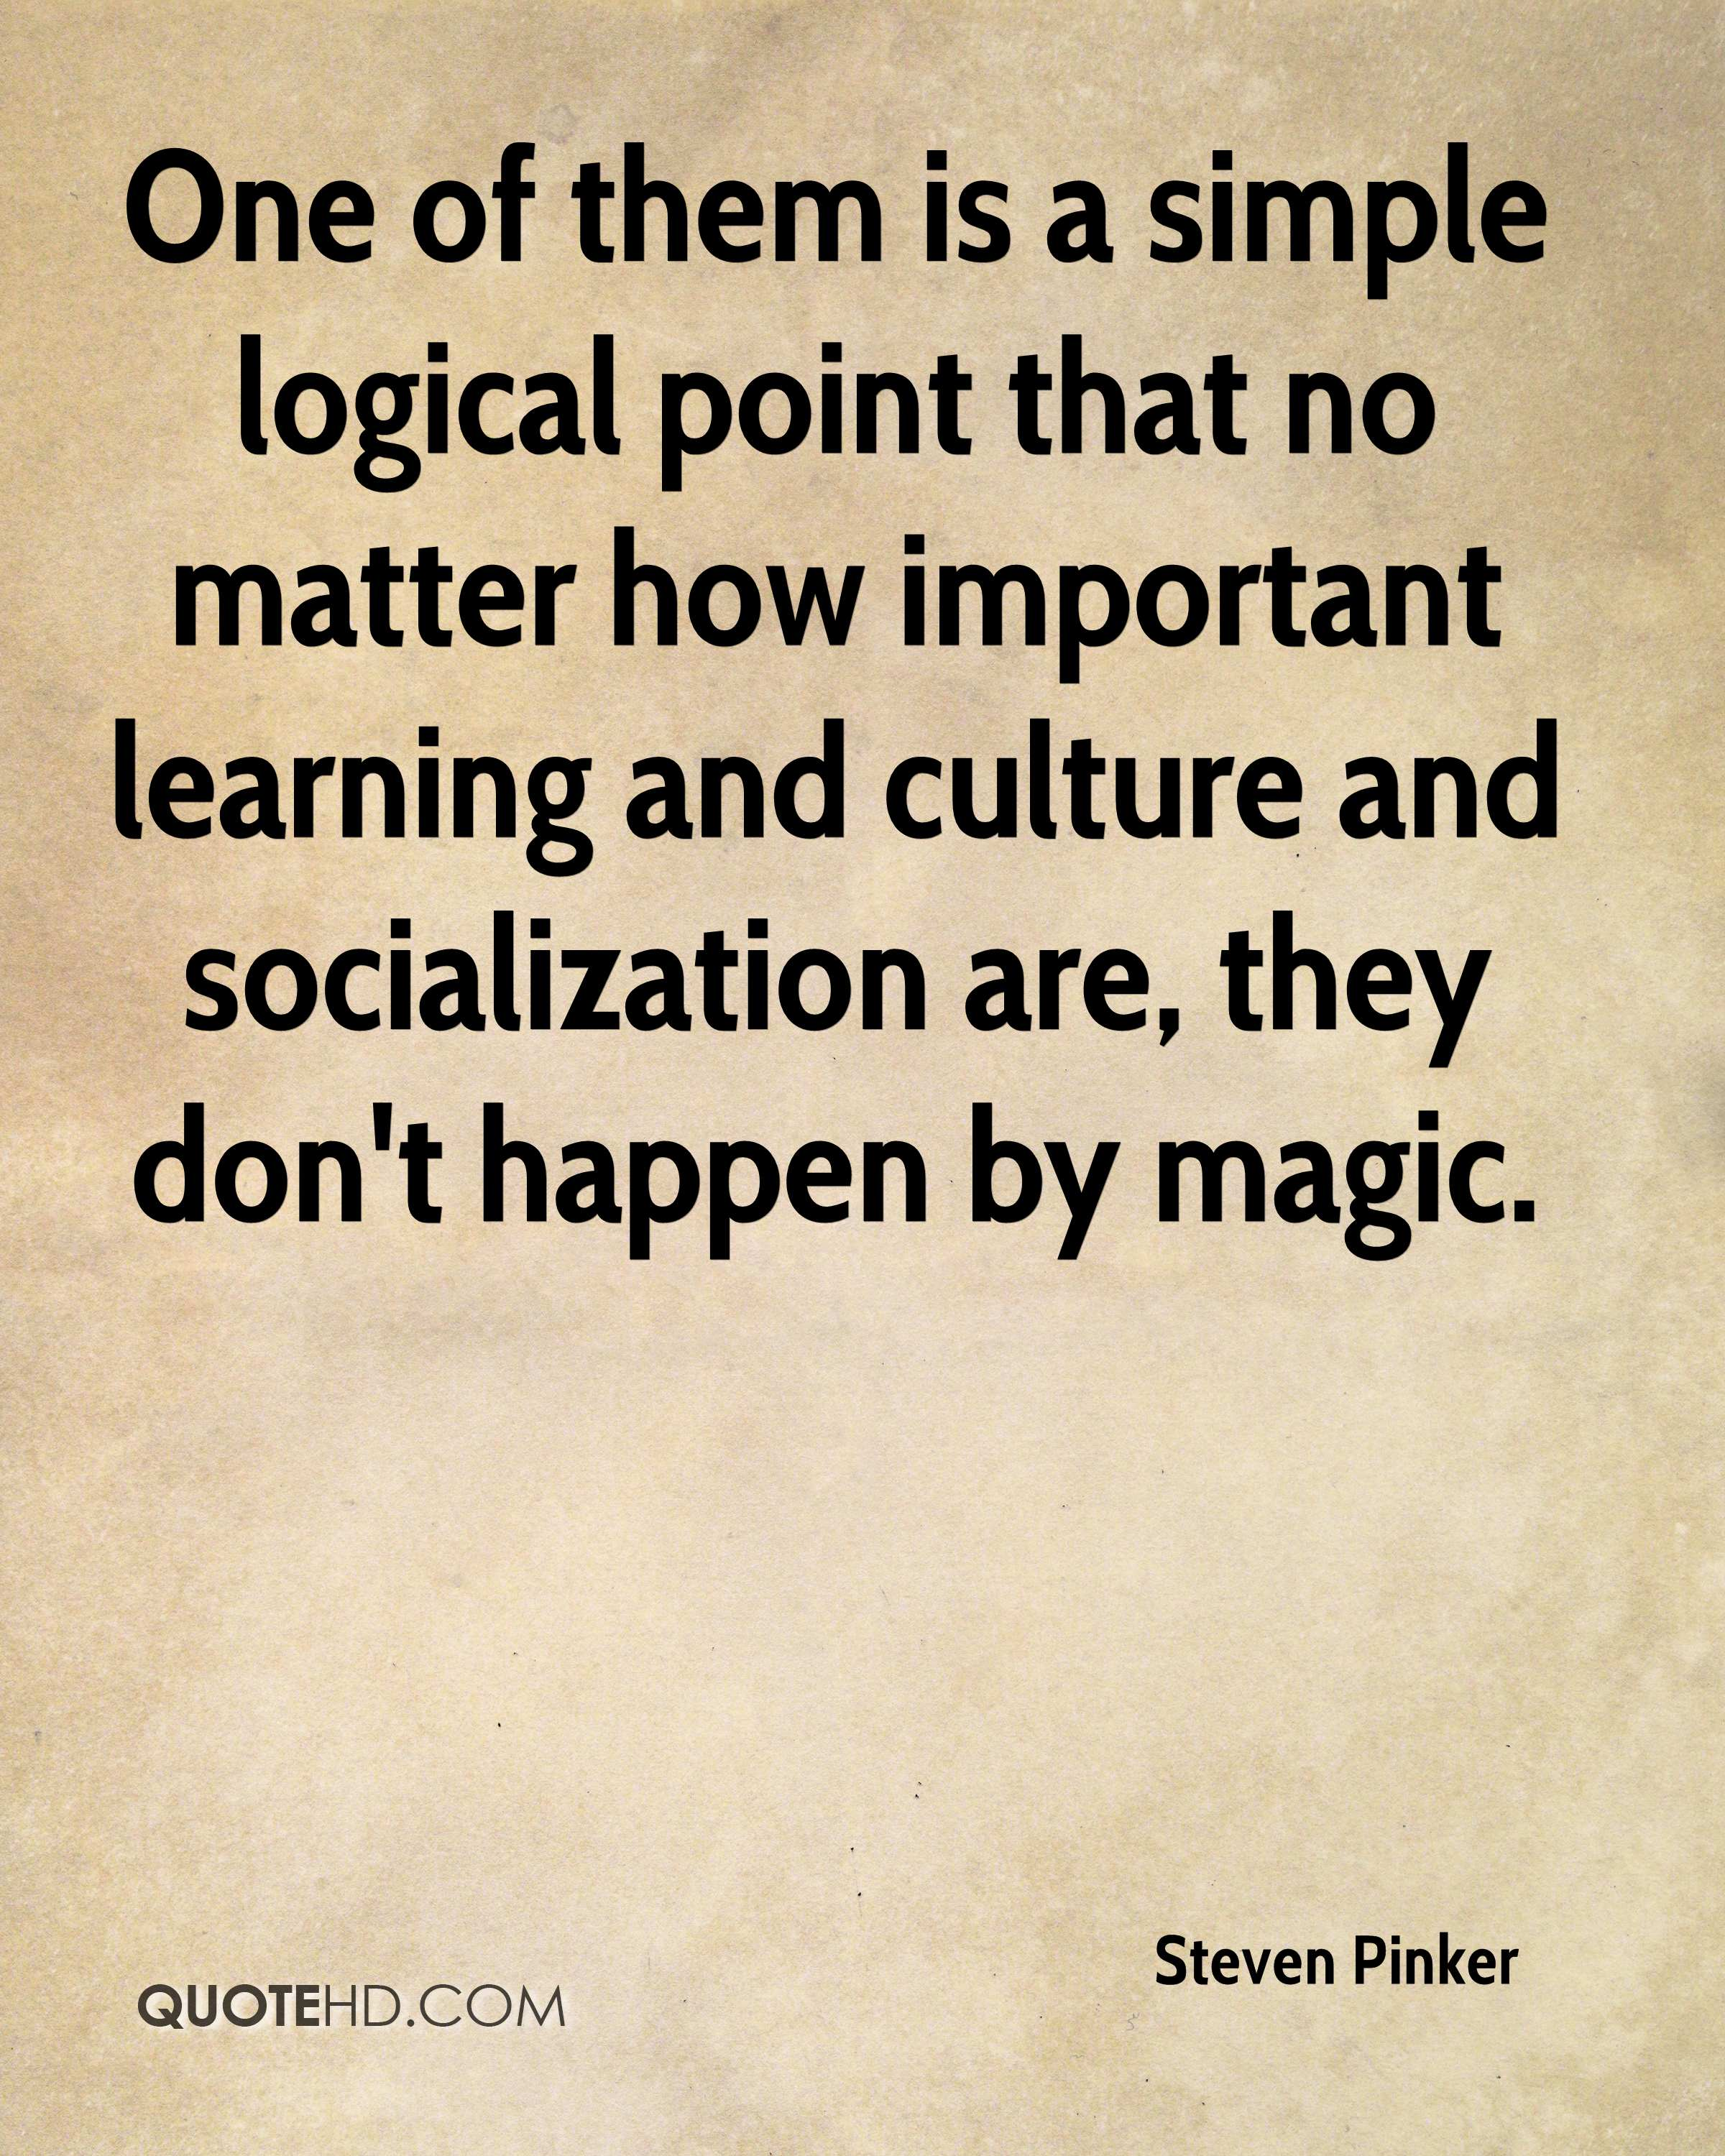 One of them is a simple logical point that no matter how important learning and culture and socialization are, they don't happen by magic.